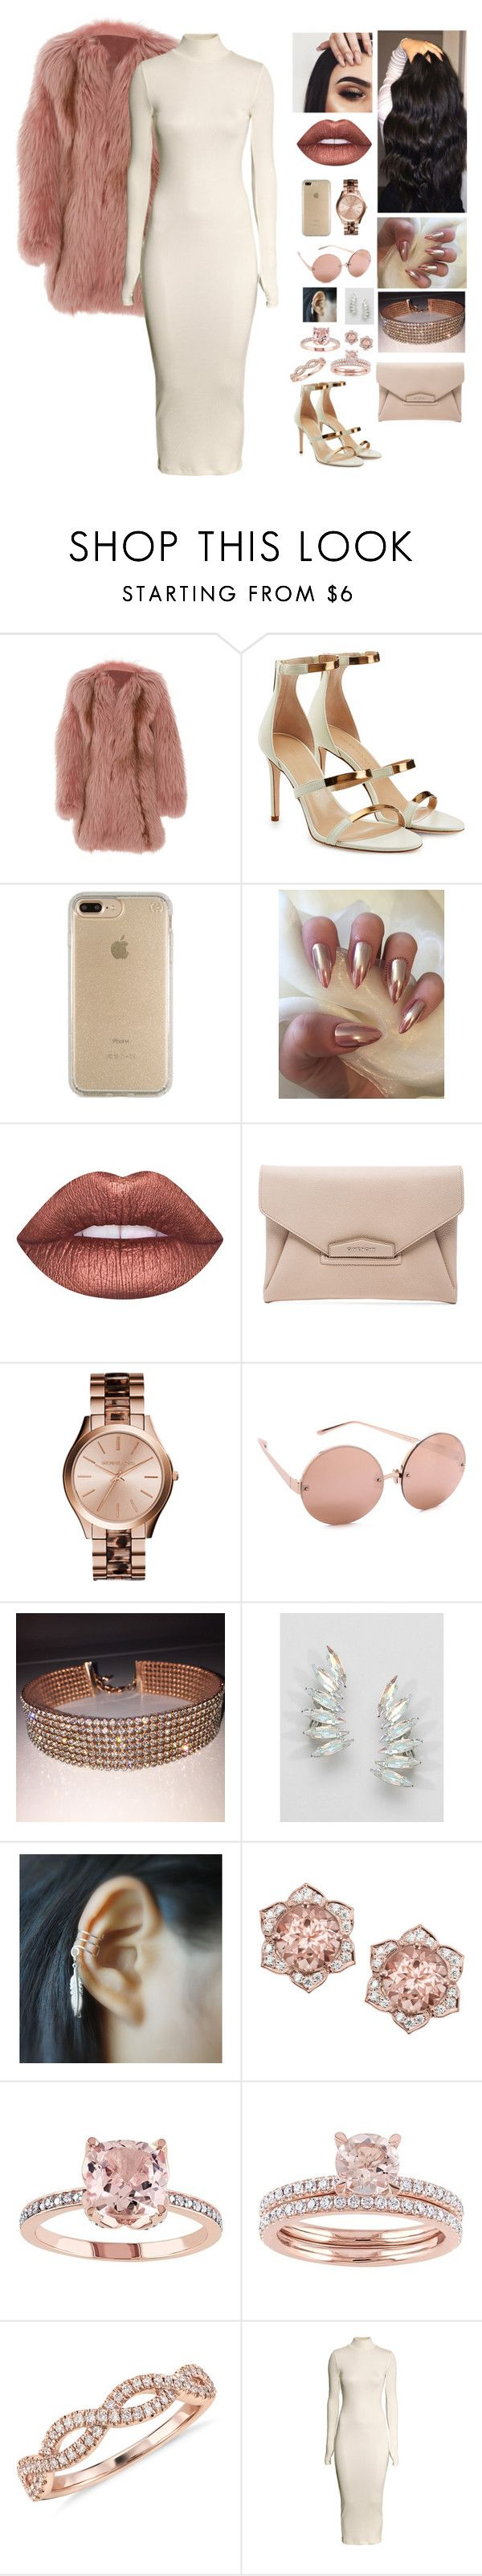 """""""Unbenannt #481"""" by aysuyucel ❤ liked on Polyvore featuring J. Mendel, Tamara Mellon, Speck, Lime Crime, Givenchy, Linda Farrow, Krystal, Blue Nile and H&M"""